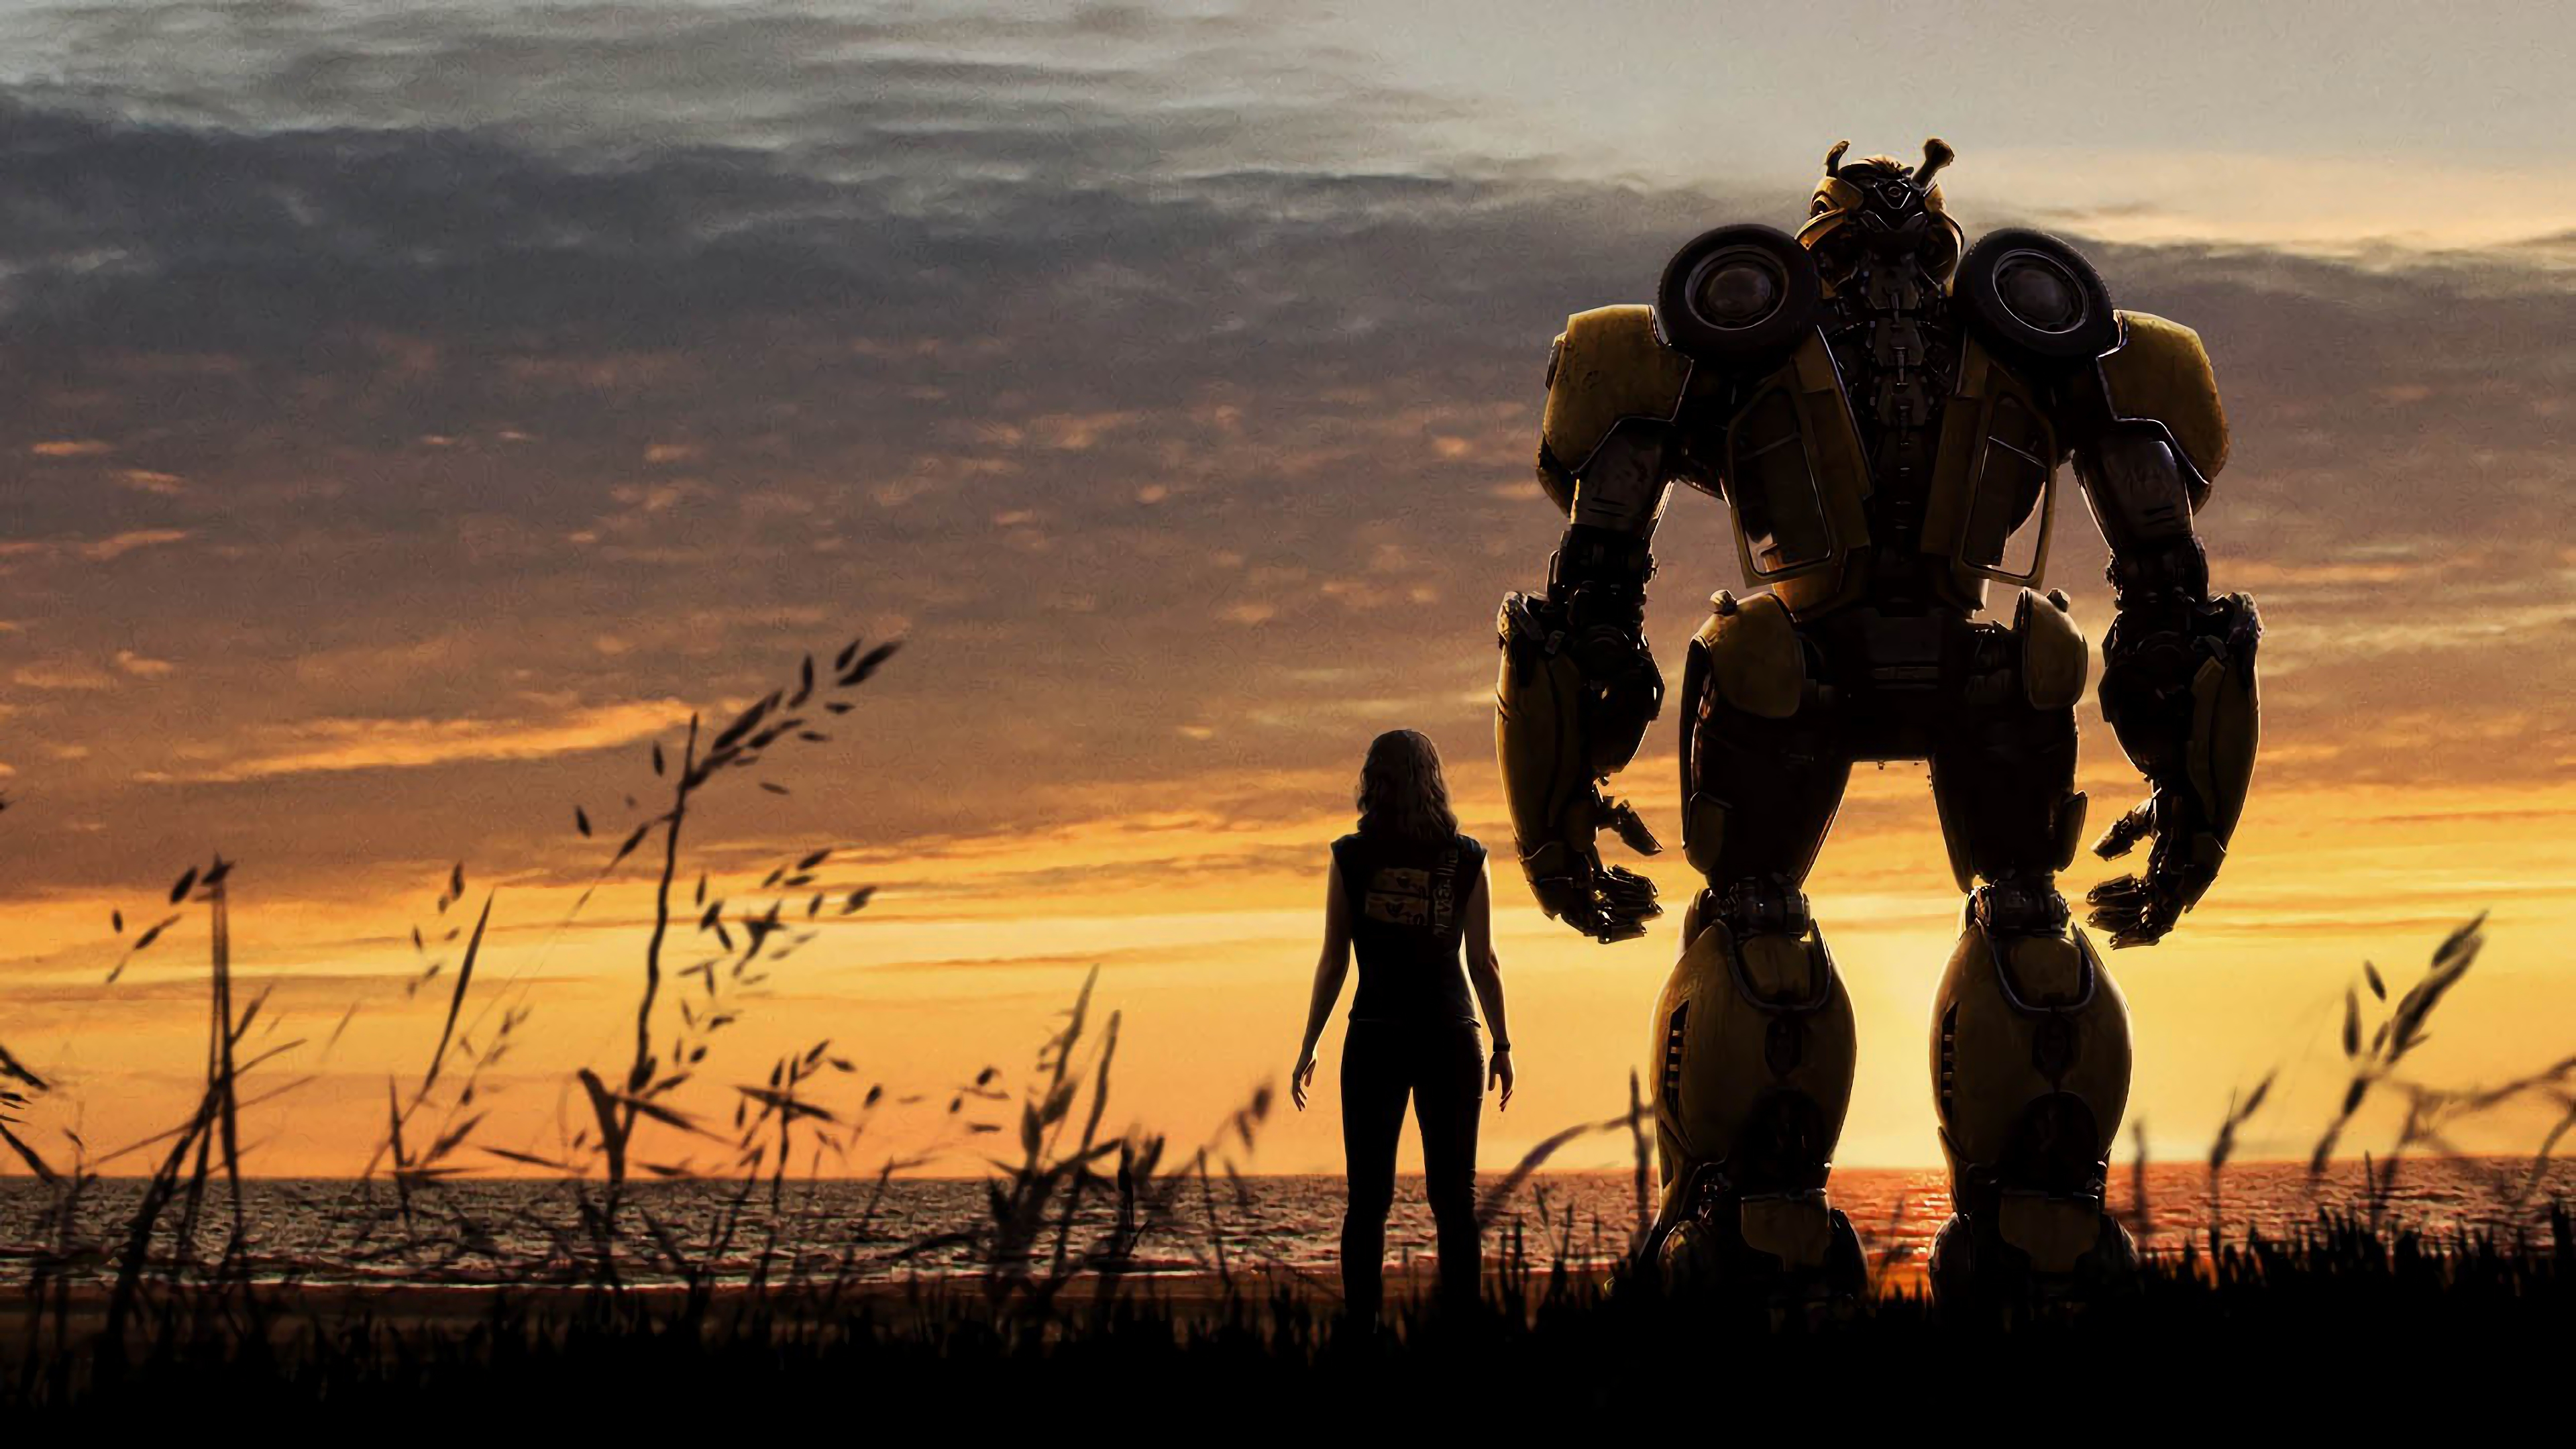 bumblebee 2018 movie 4k wallpaper 1545590329 - Bumblebee 2018 Movie 4K Wallpaper - Bumblebee (Movie 2018), Bumblebee